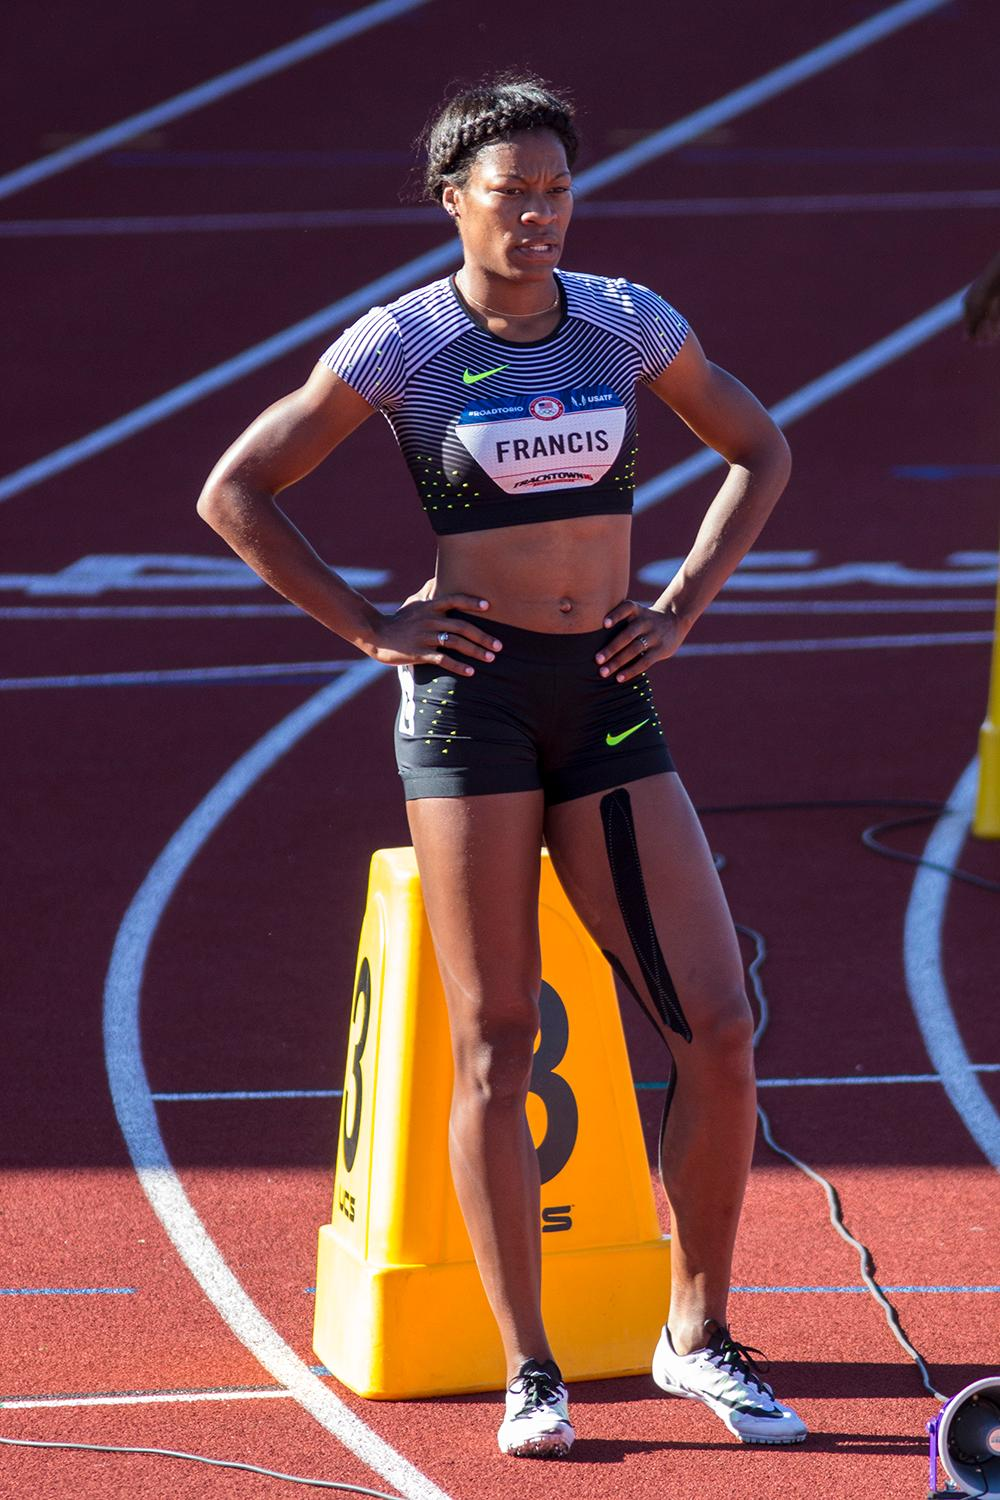 Nike's Phyllis Francis prepares to run in heat 2 of the Women's 400m dash. Francis finished in 2nd and qualified for the Olympics with a time of 50.81. Day one of the U.S. Olympic Trials began on Friday at Hayward Field in Eugene, Ore. And will continue through July 10. (Photo by Amanda Butt)